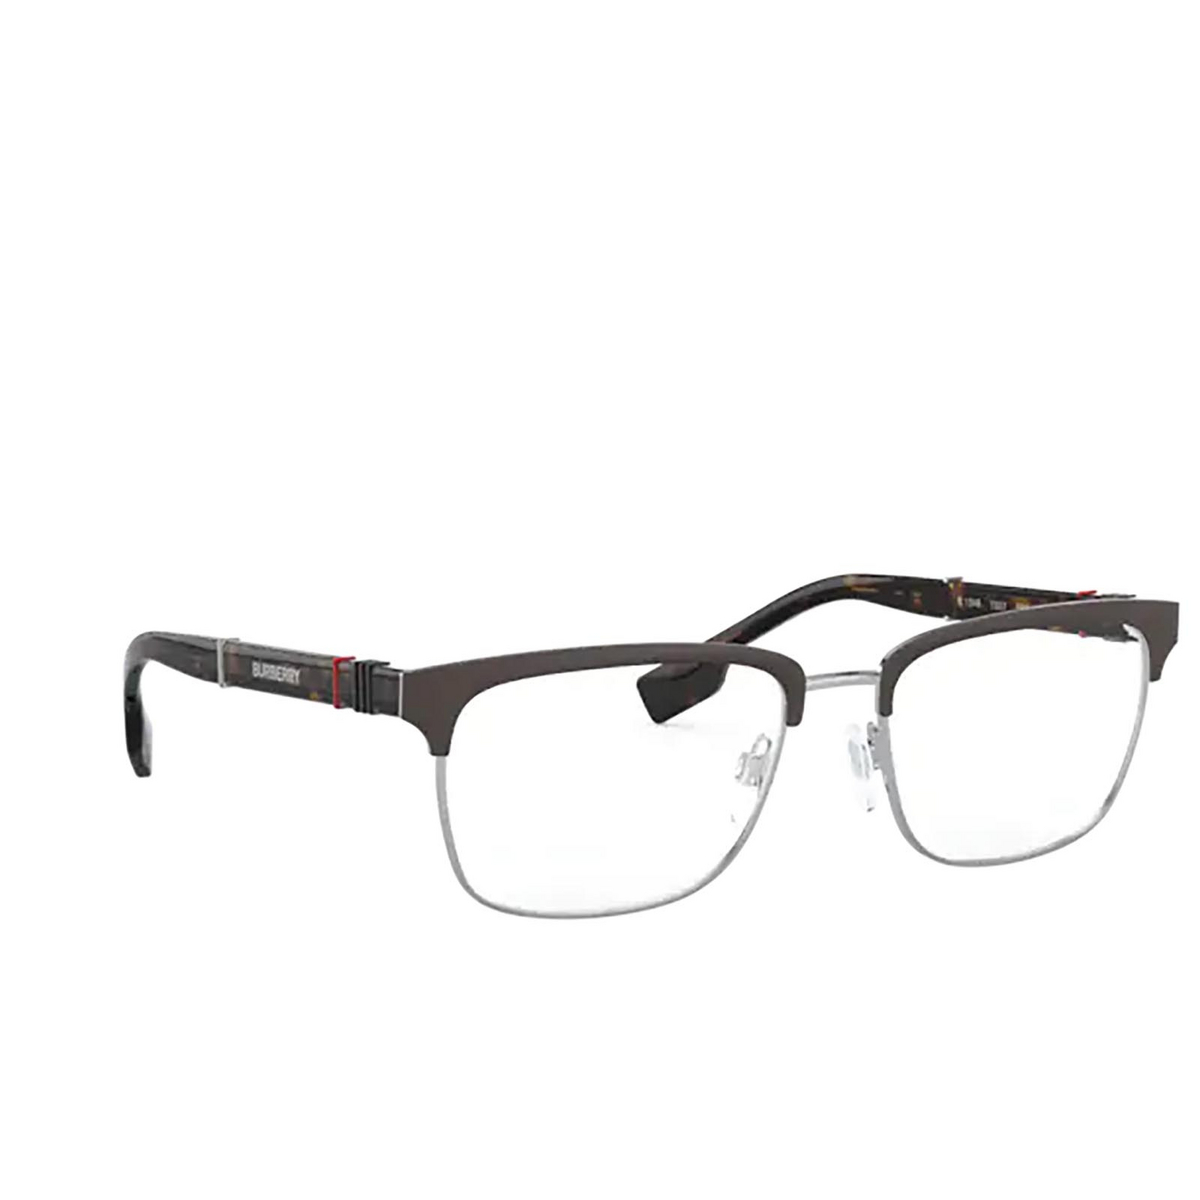 Burberry® Rectangle Eyeglasses: Alba BE1348 color Silver / Matte Brown 1307 - three-quarters view.